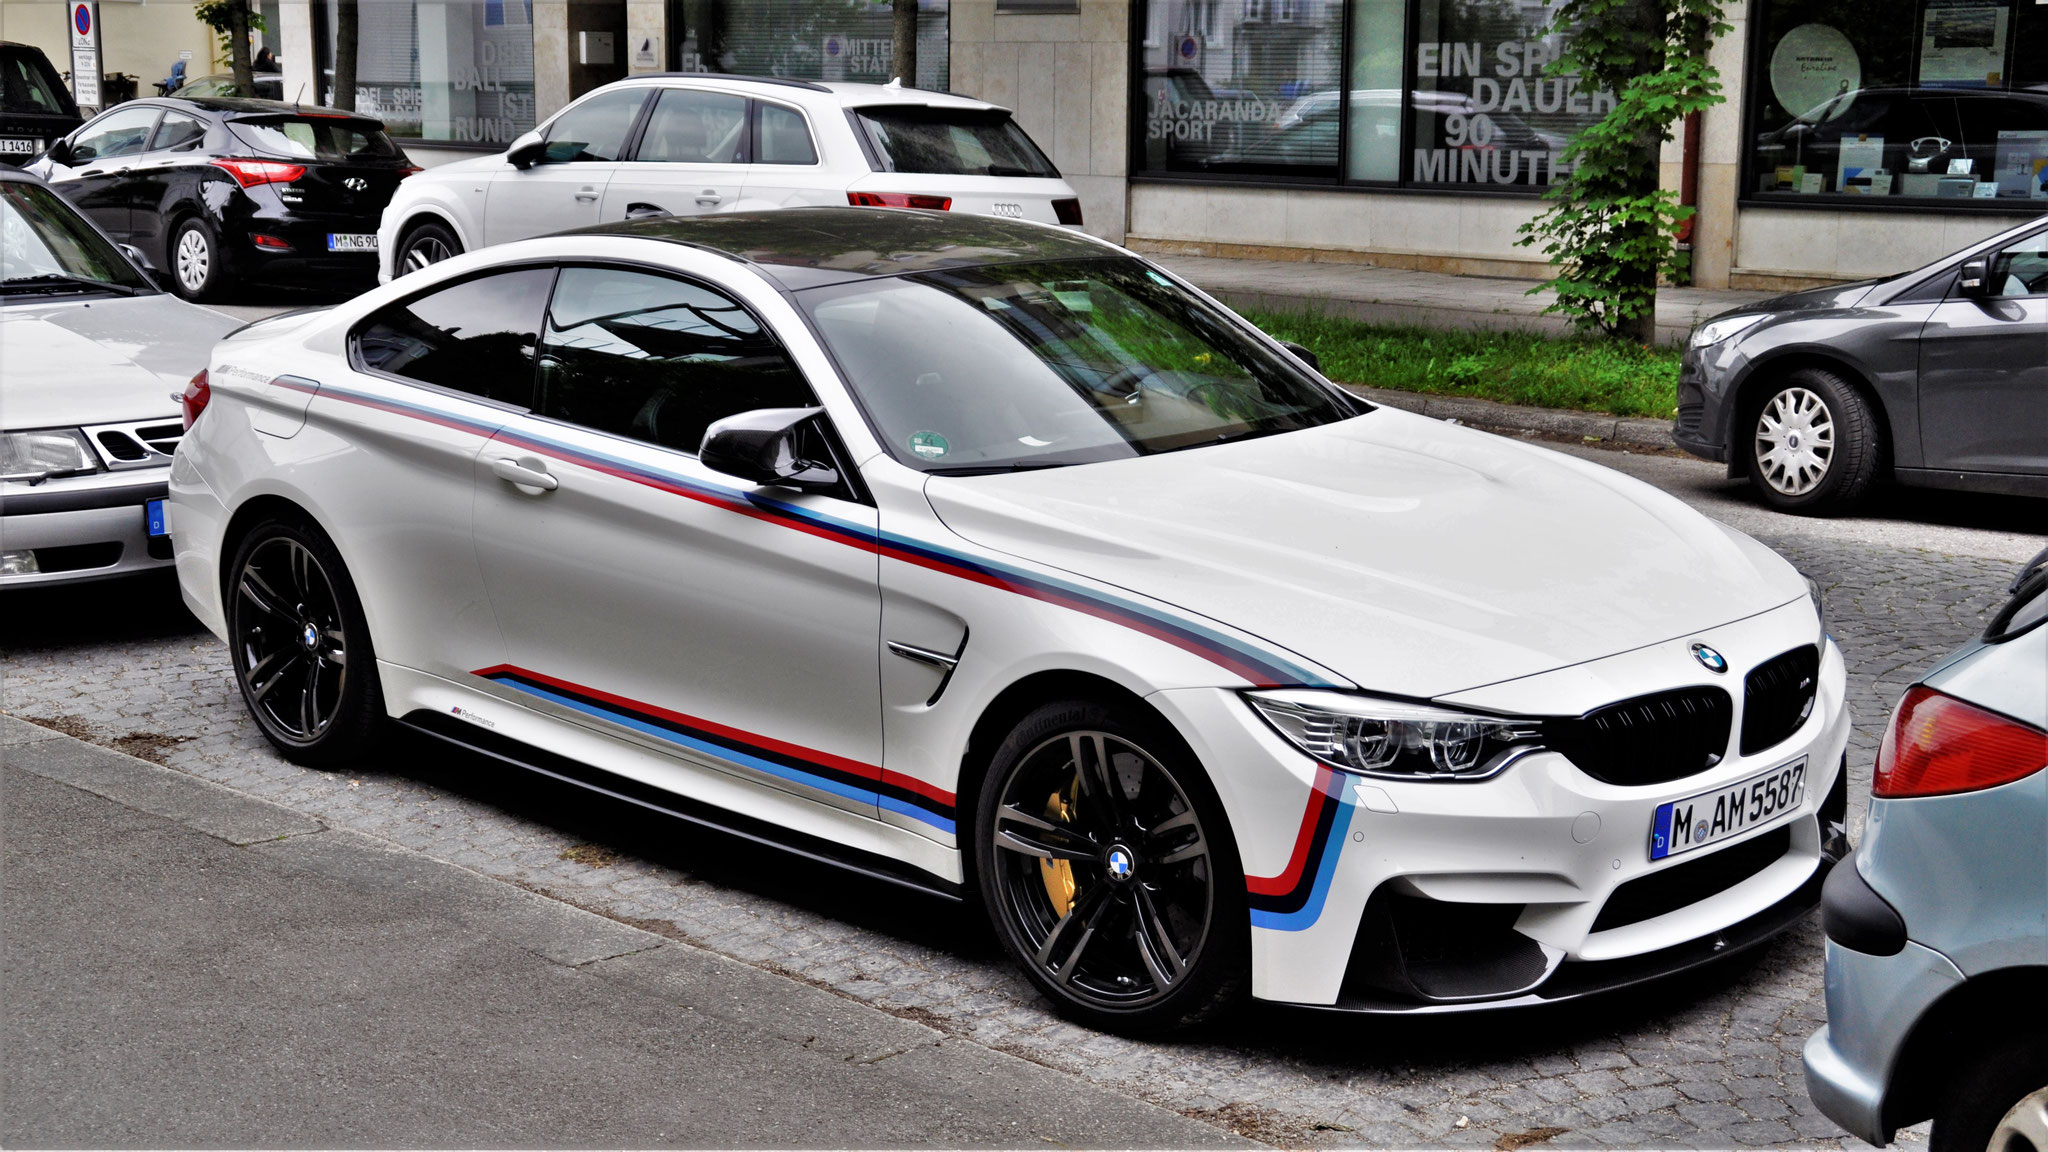 BMW M4 M Performance - M-AM-5587